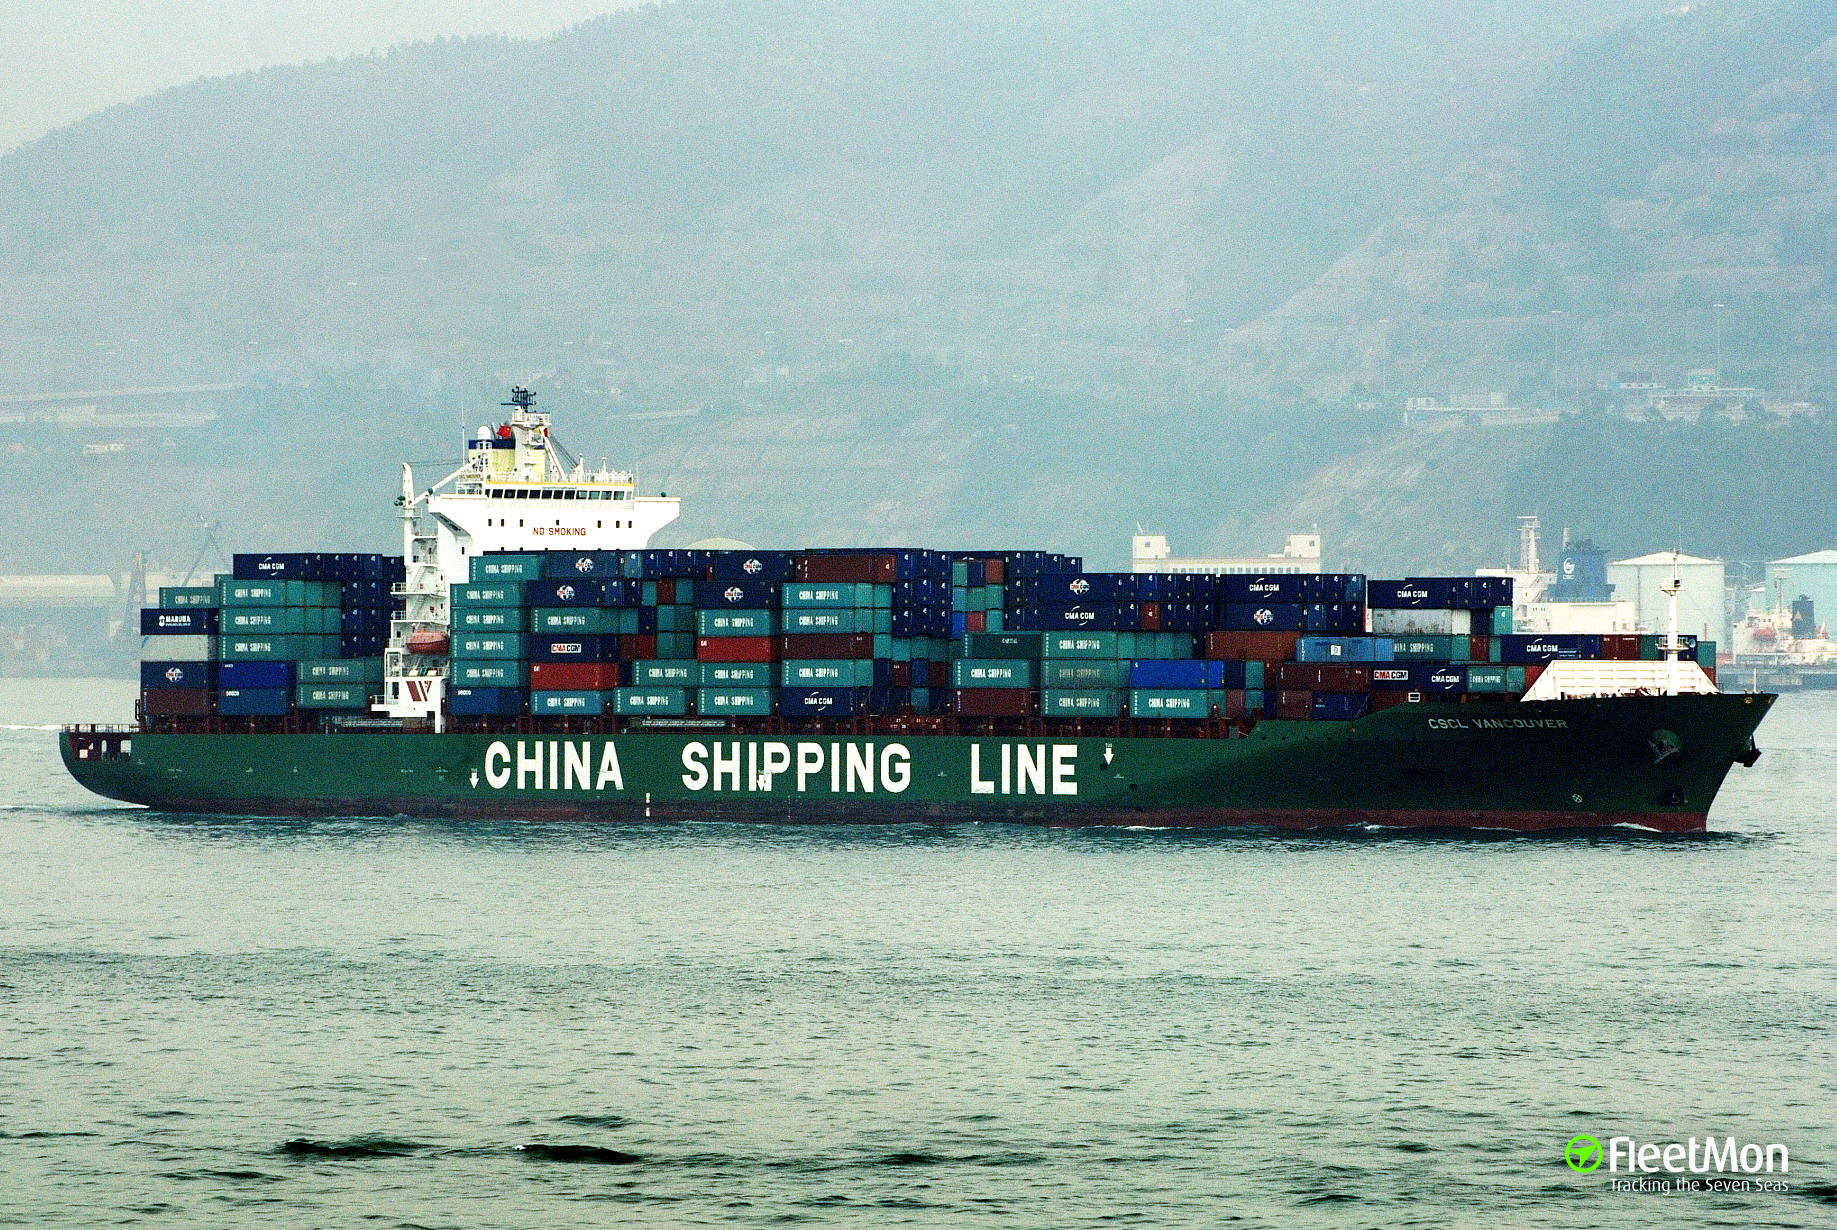 Container ship CSCL VANCOUVER fire